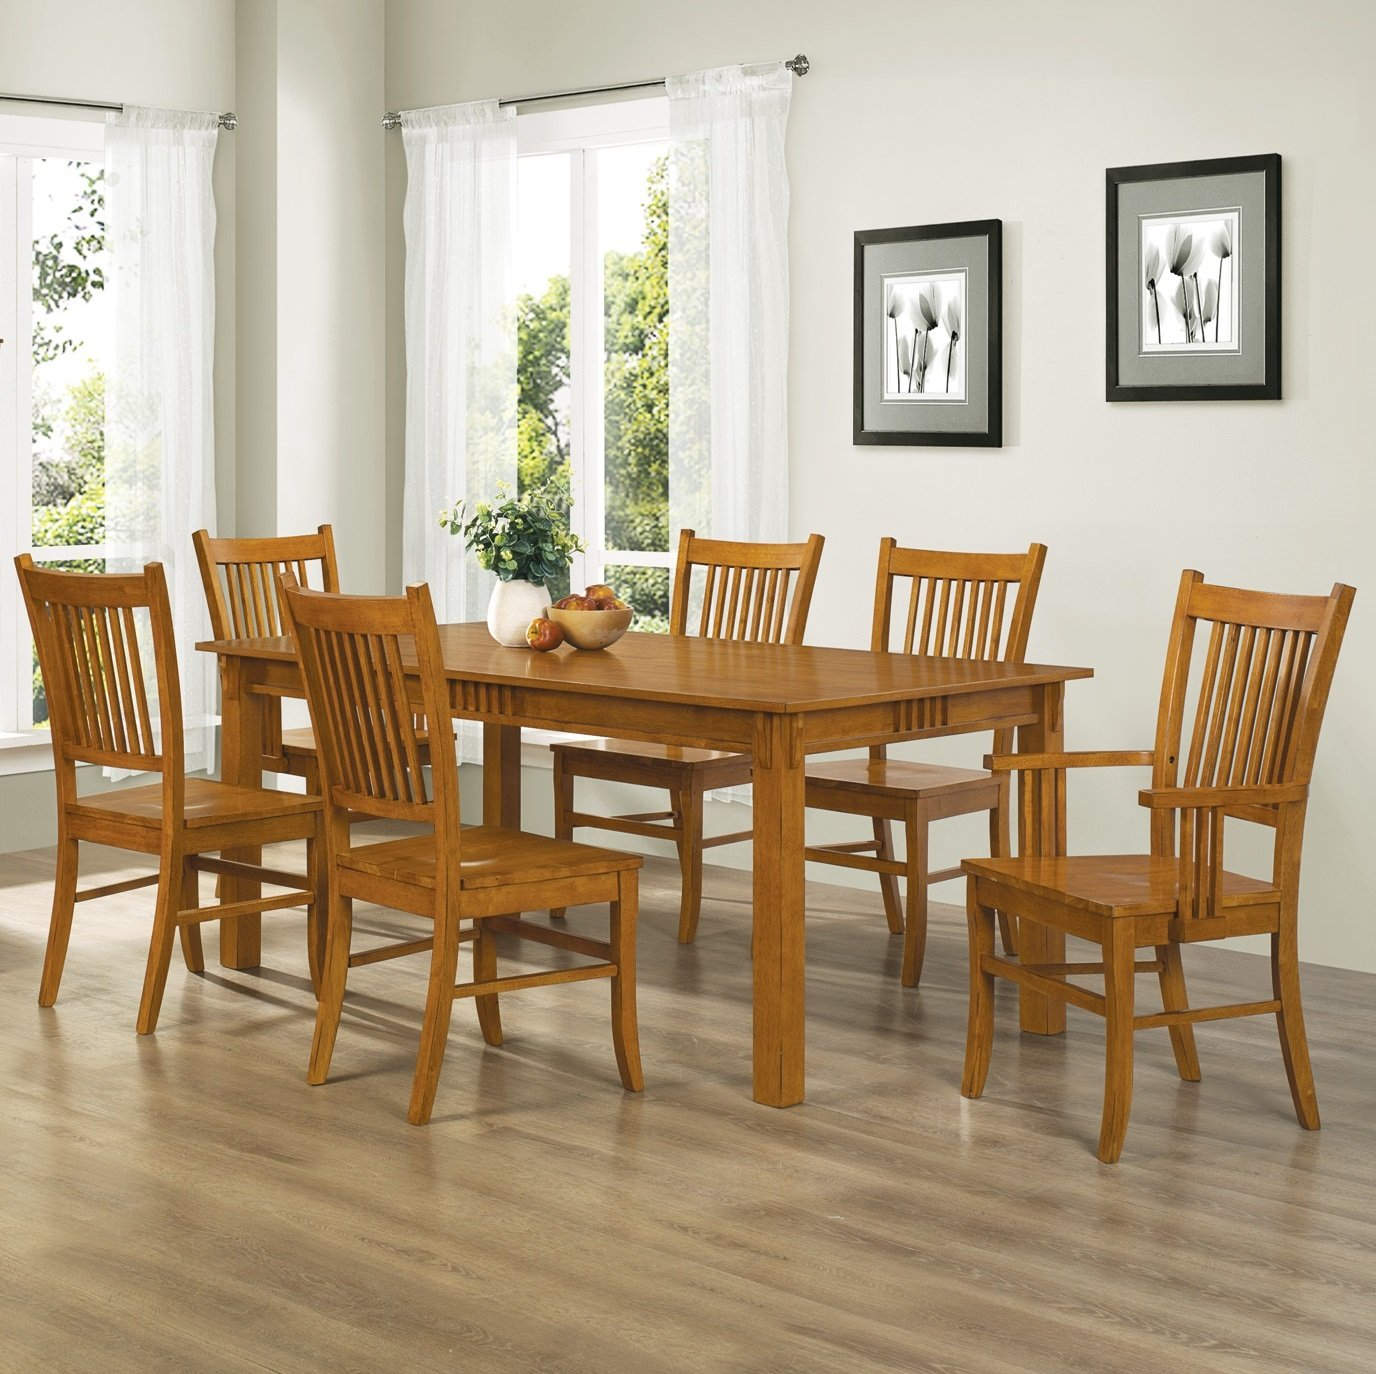 Amazon.com - Coaster Home Furnishings 7-Piece Mission Style Solid Hardwood Dining Table \u0026 Chairs Set - Table \u0026 Chair Sets : brown dining table set - pezcame.com